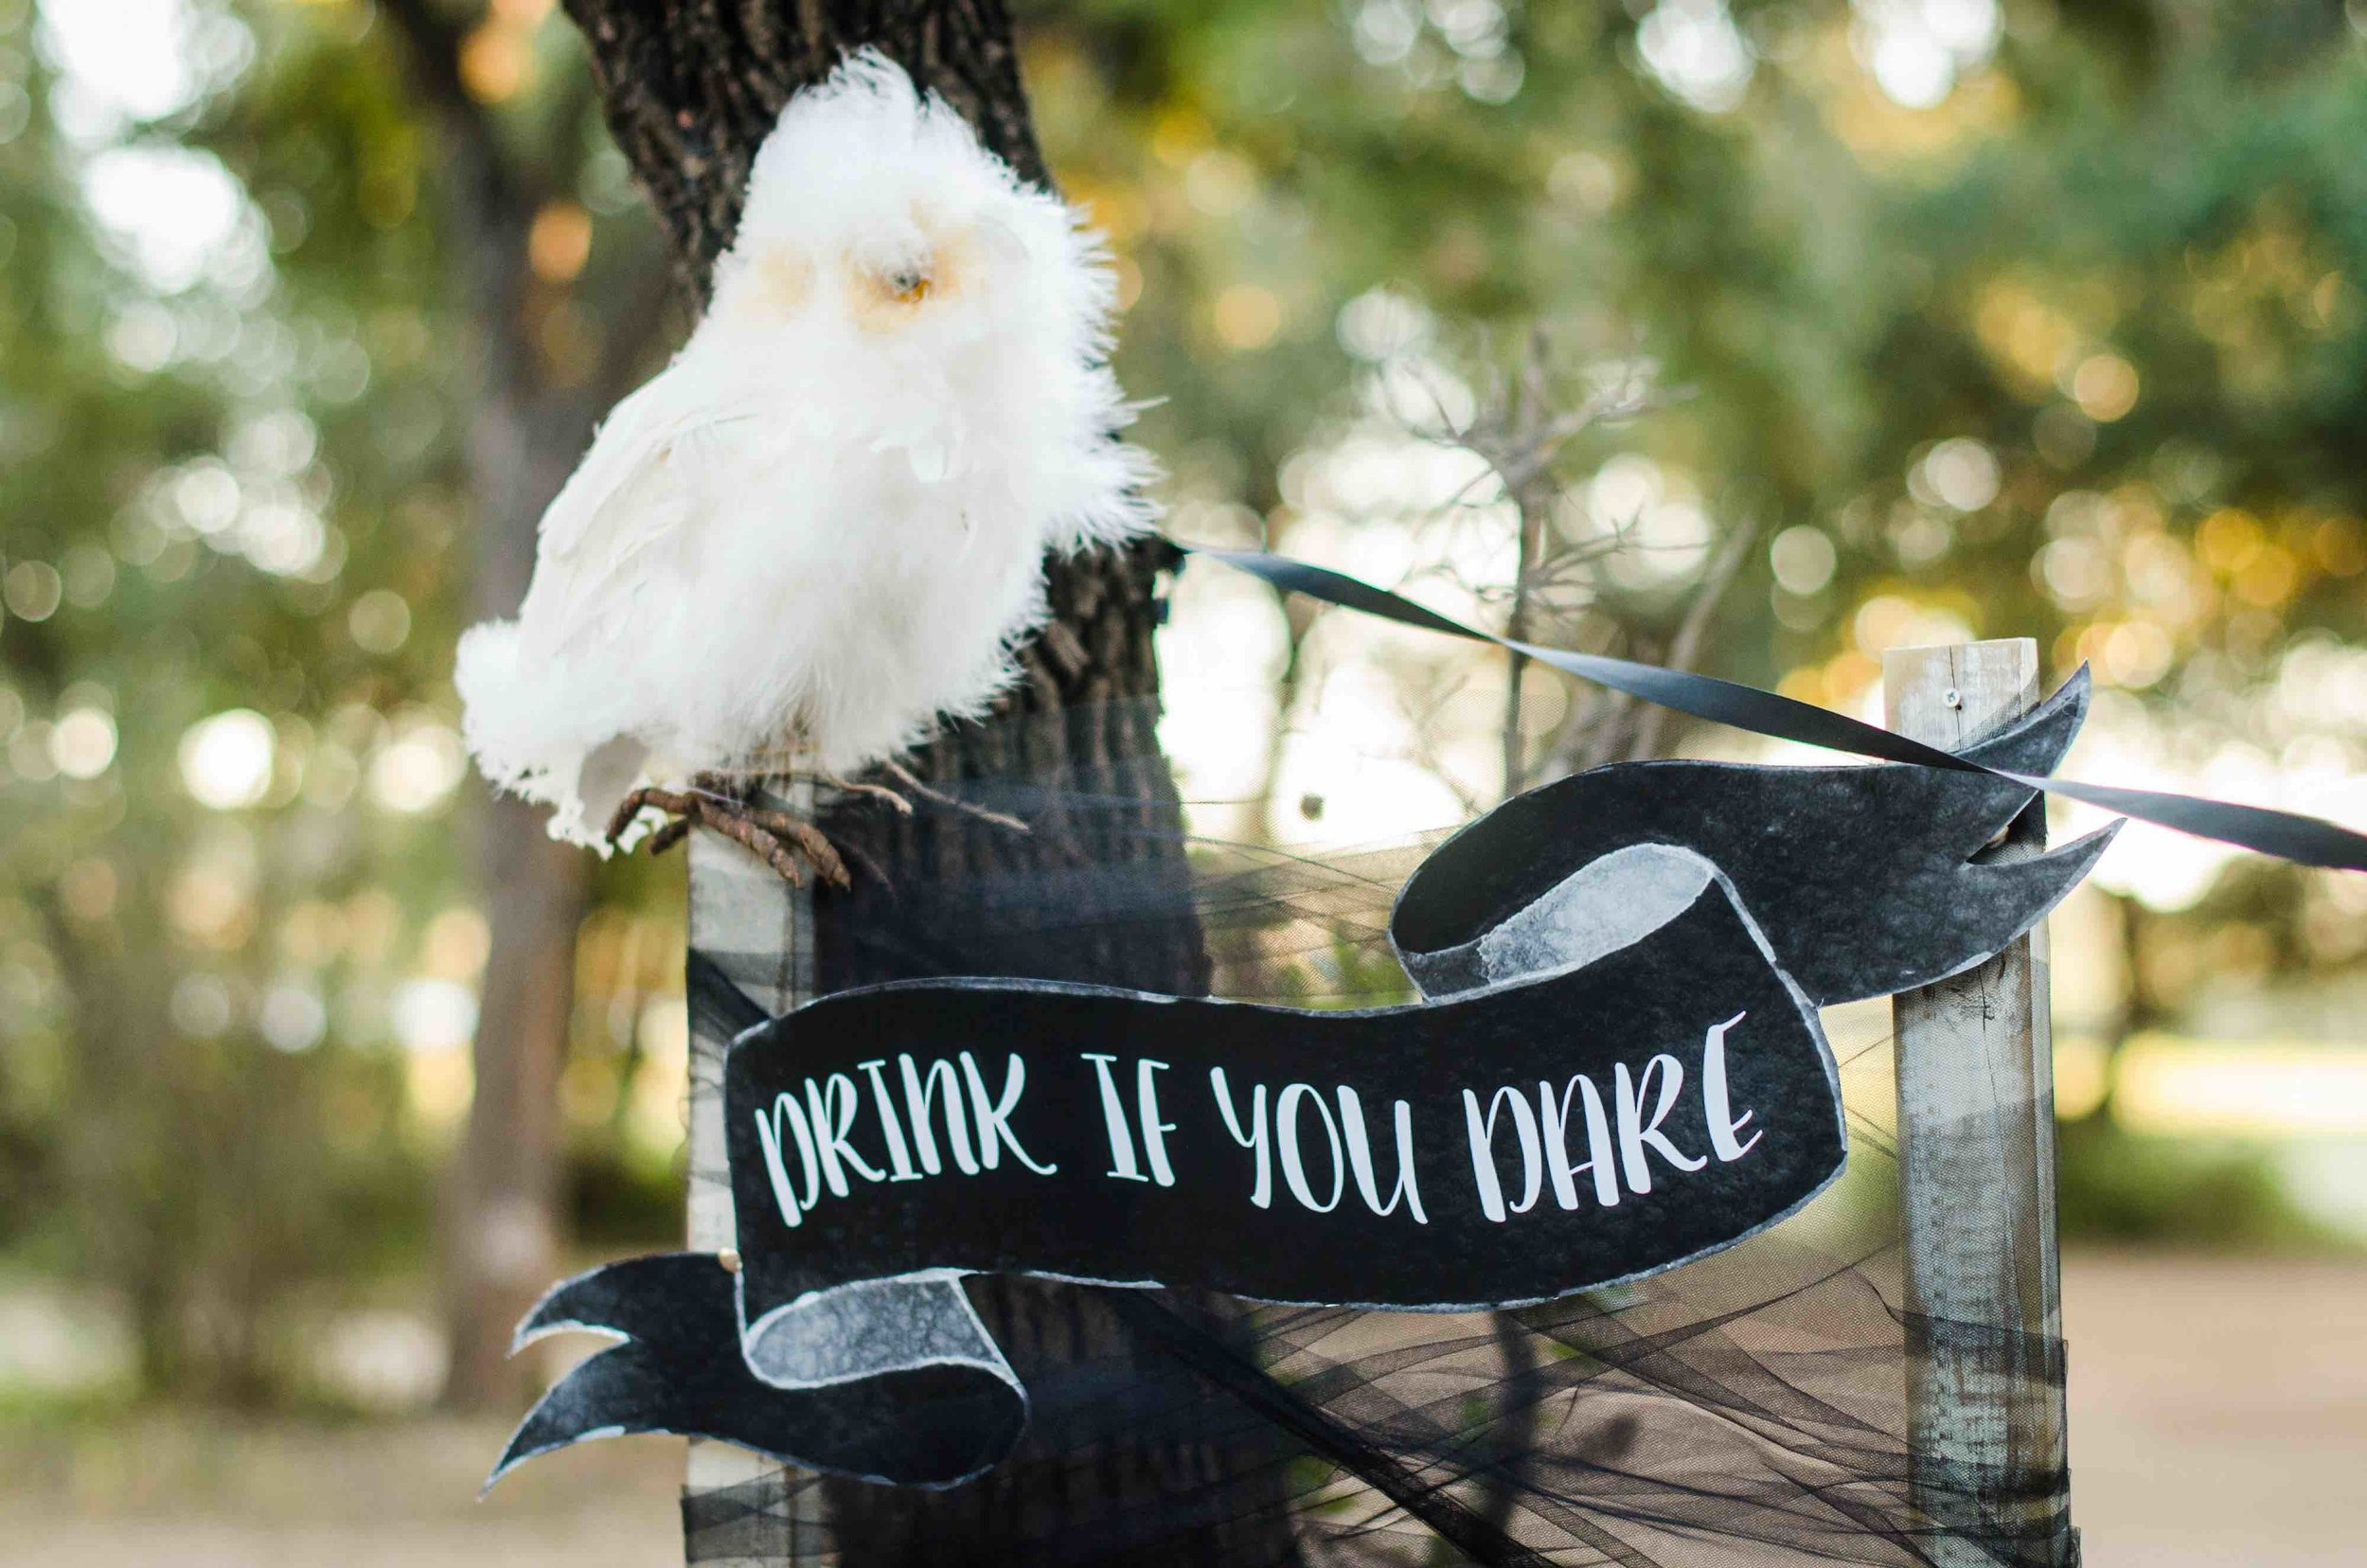 This Halloween Drink Station says to Drink if you Dare with an owl that's having a bad hair day. Halloween is a great time to have fun with your wording and making your Hallowen Party set up a little extra frightening. Click to see all the Halloween Party Ideas that you can re-create for your very own Halloween Kids Party. Styled by party stylist Mint Event Design. #halloween #partyideas #partyinspiration #partydecor #partysigns #halloweensigns #halloweendecorations